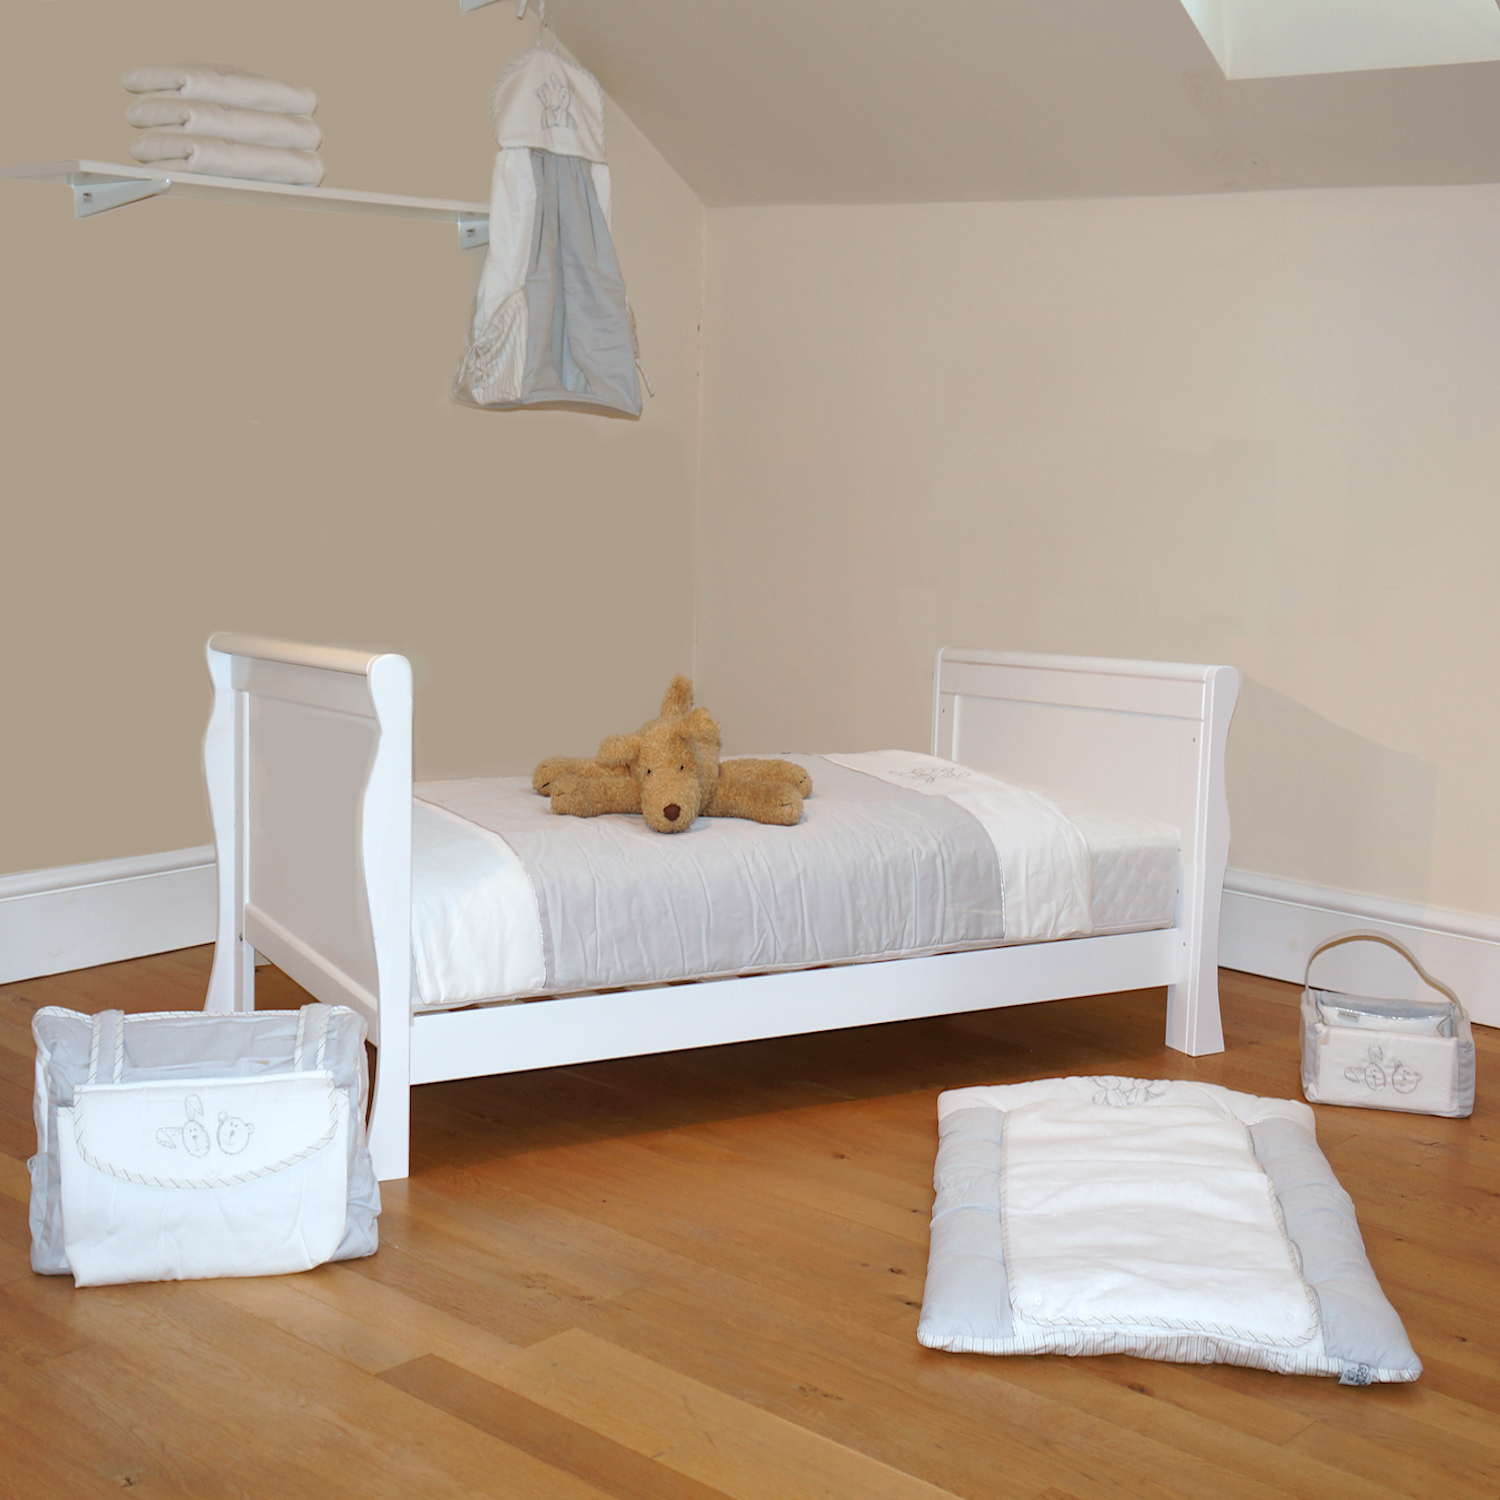 4baby 3 In 1 Sleigh Cot Bed With Deluxe Foam Mattress White Buy At Online4baby